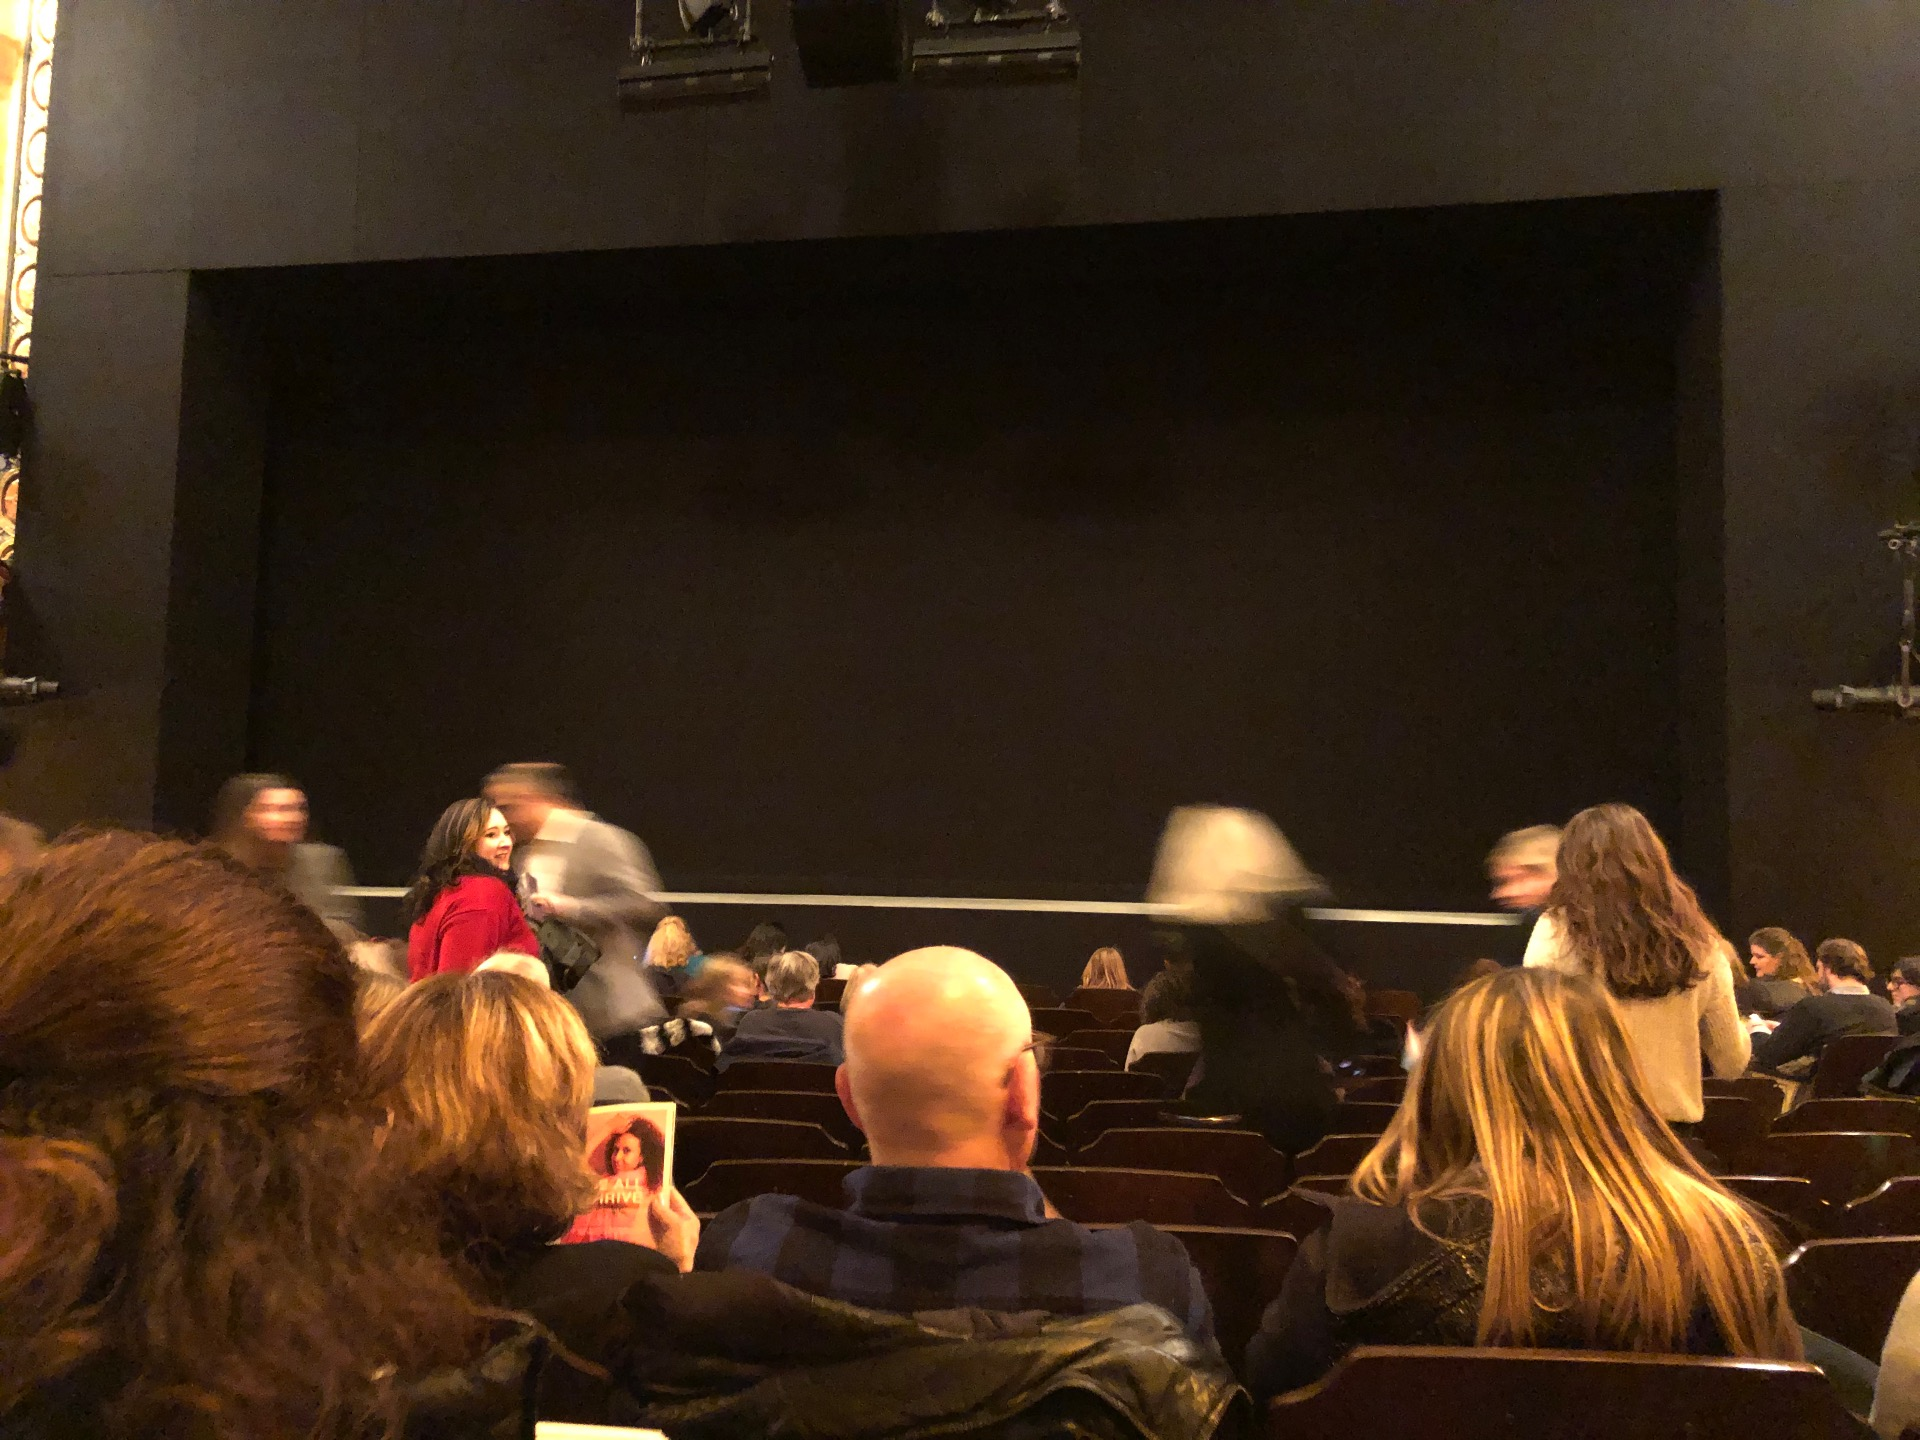 Bernard B. Jacobs Theatre Section Orchestra C Row K Seat 104